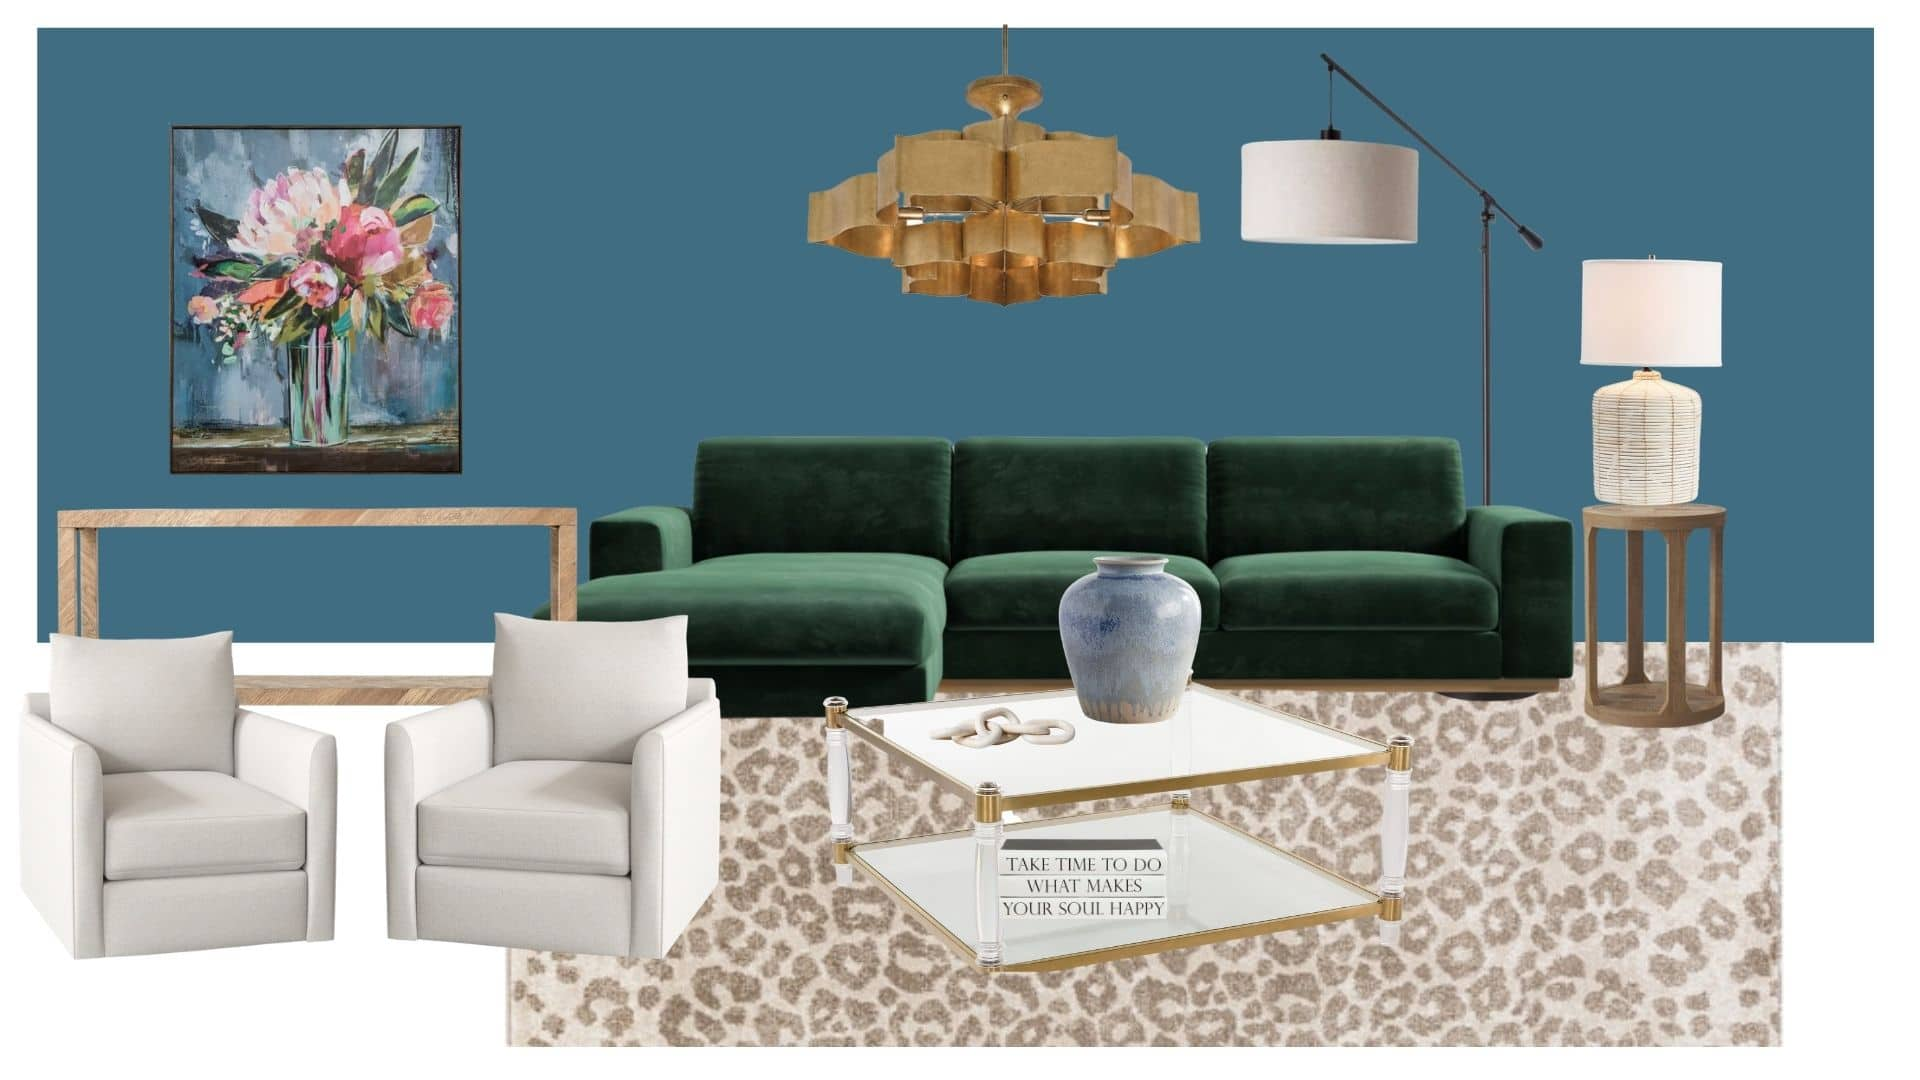 The room mood board for the family room, including Boutique Rugs area rug in leopard print, green sofa, alice swivel armchairs.